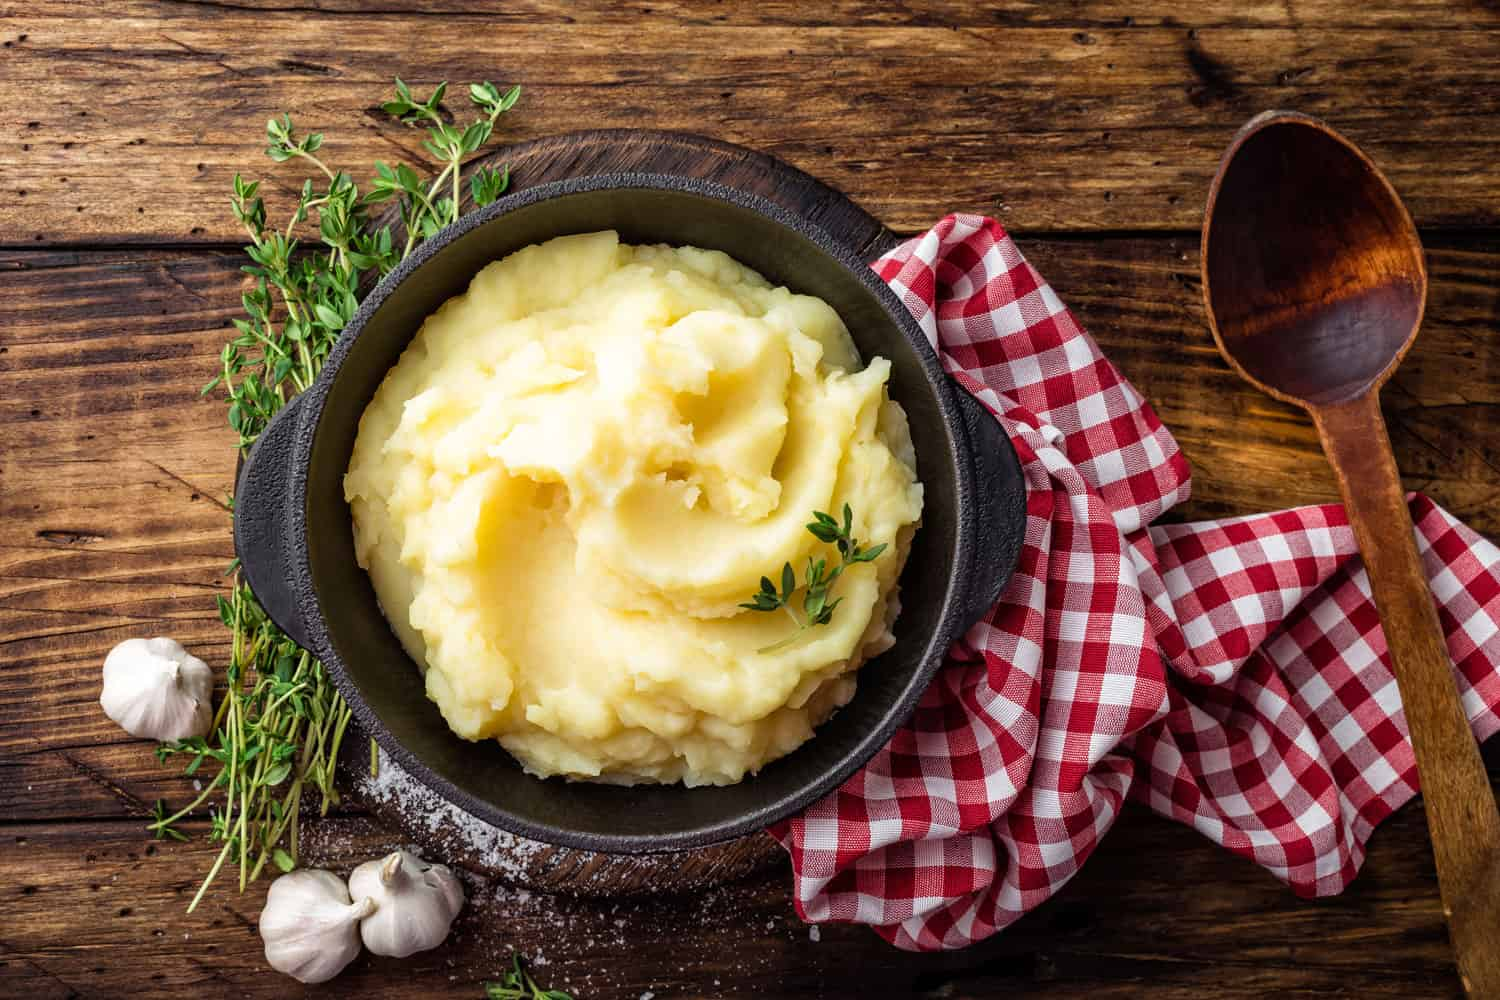 A delicious dish of mashed potato with dill on a table